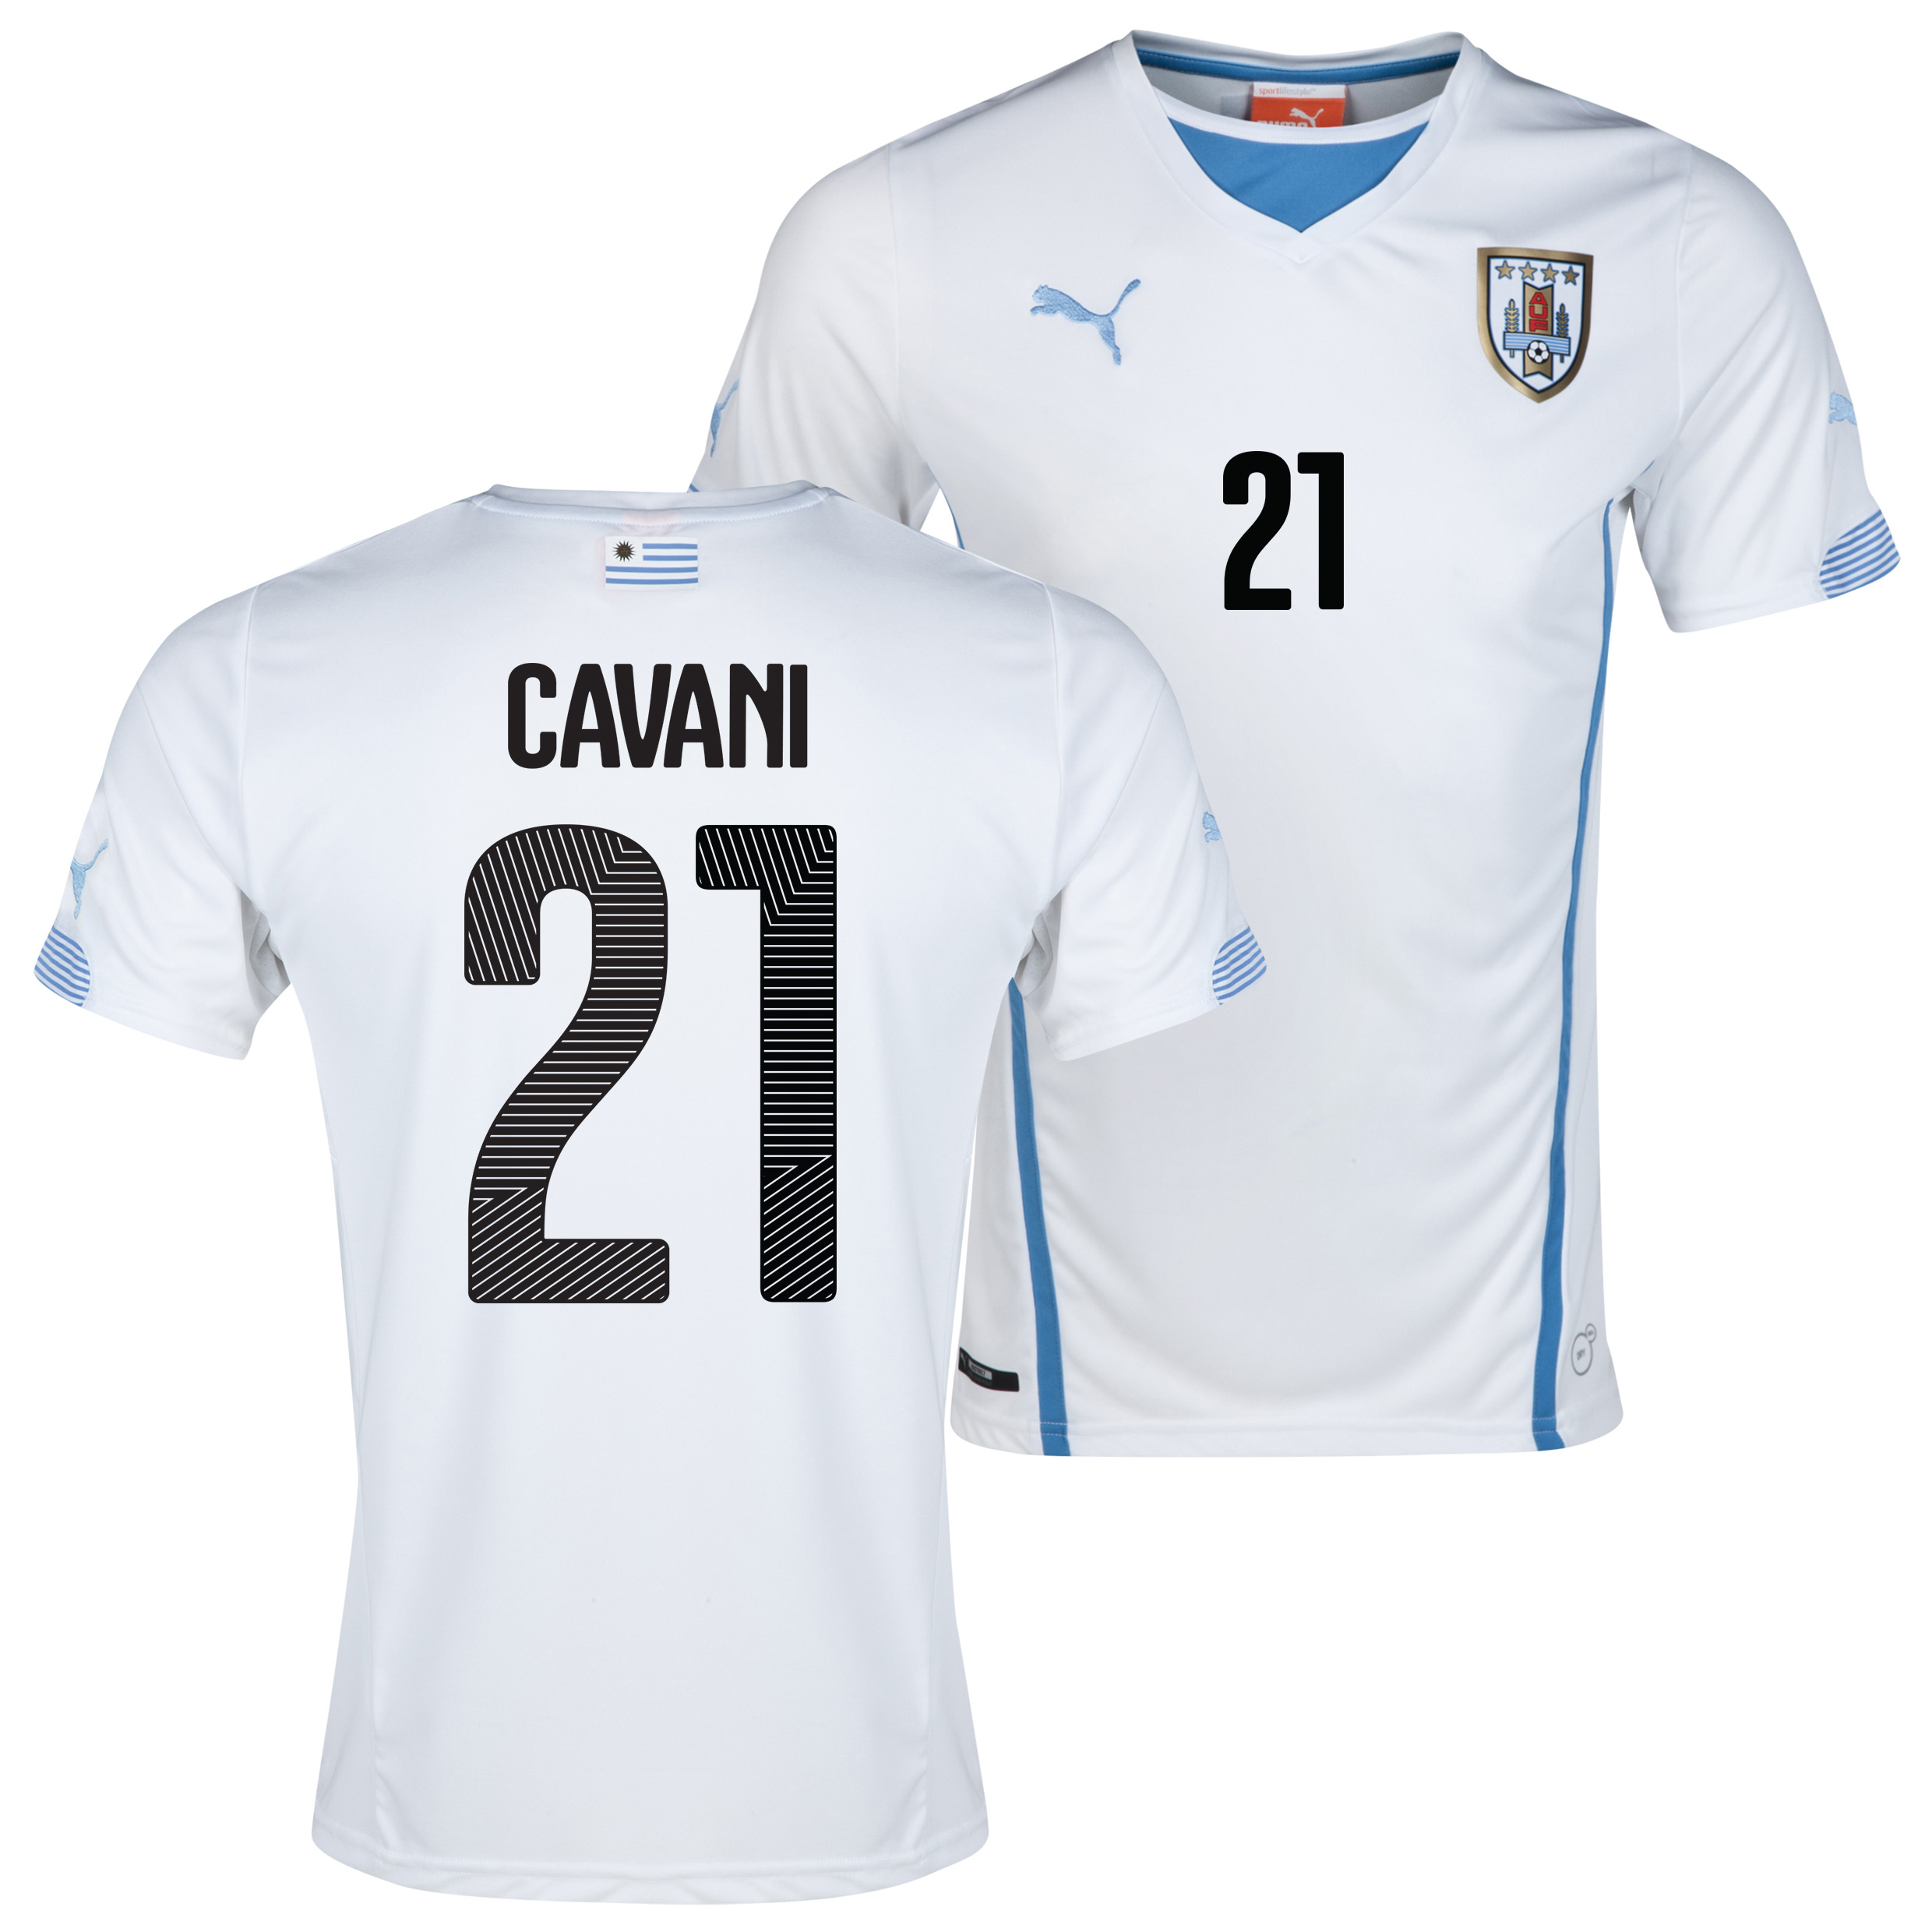 Uruguay Away Shirt 2013/14 with Cavani 21 printing